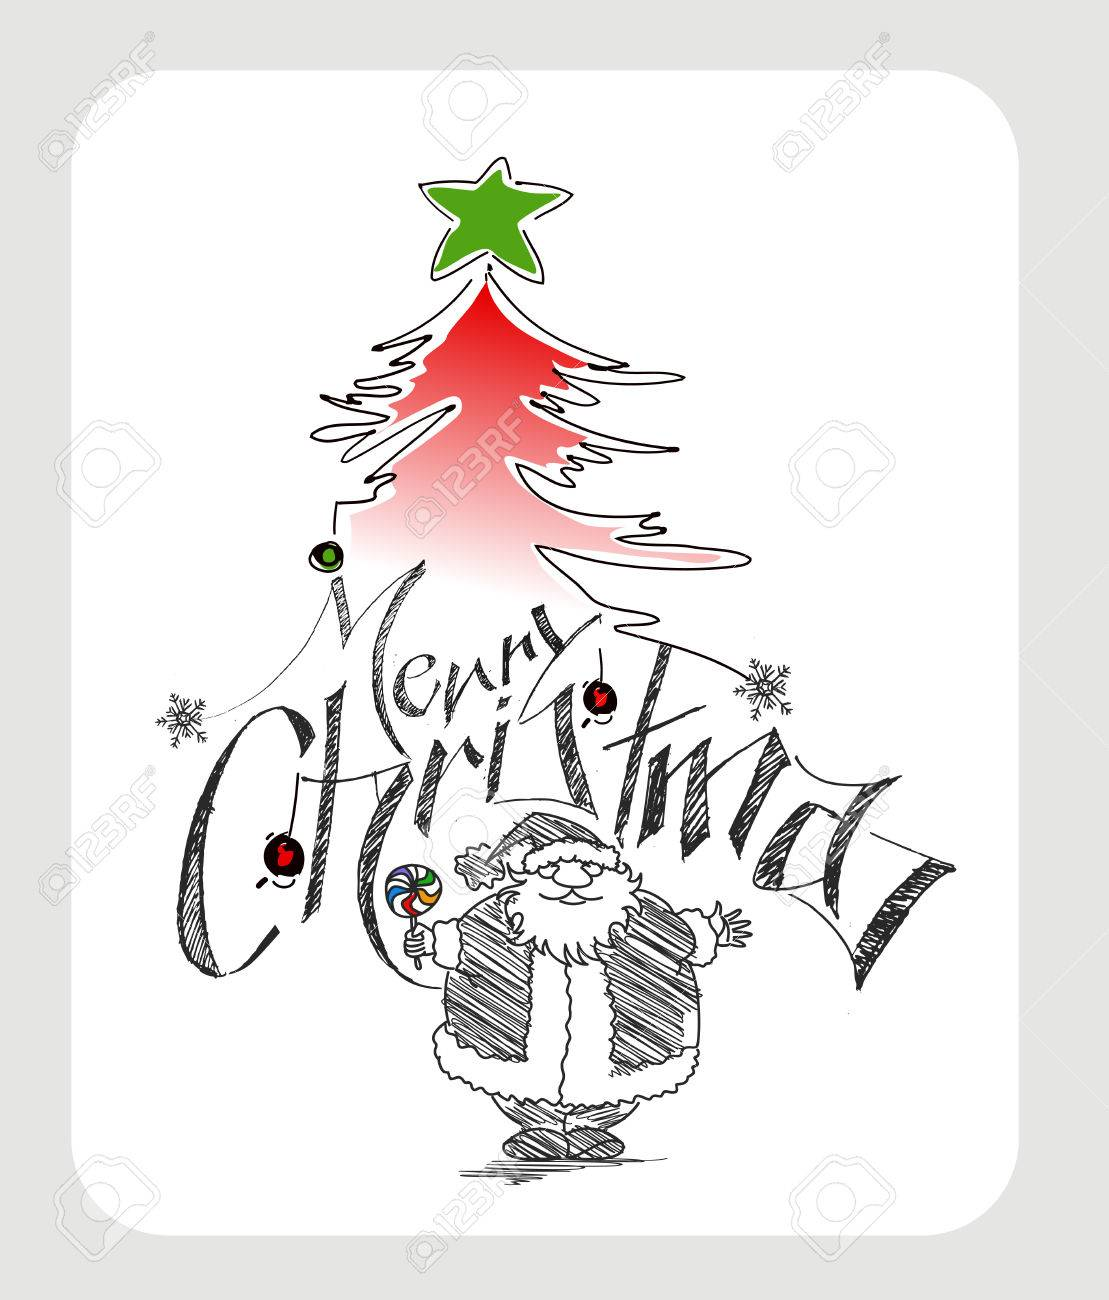 Merry Christmas! Cartoon Style Hand Sketchy Drawing Of A Funny ...